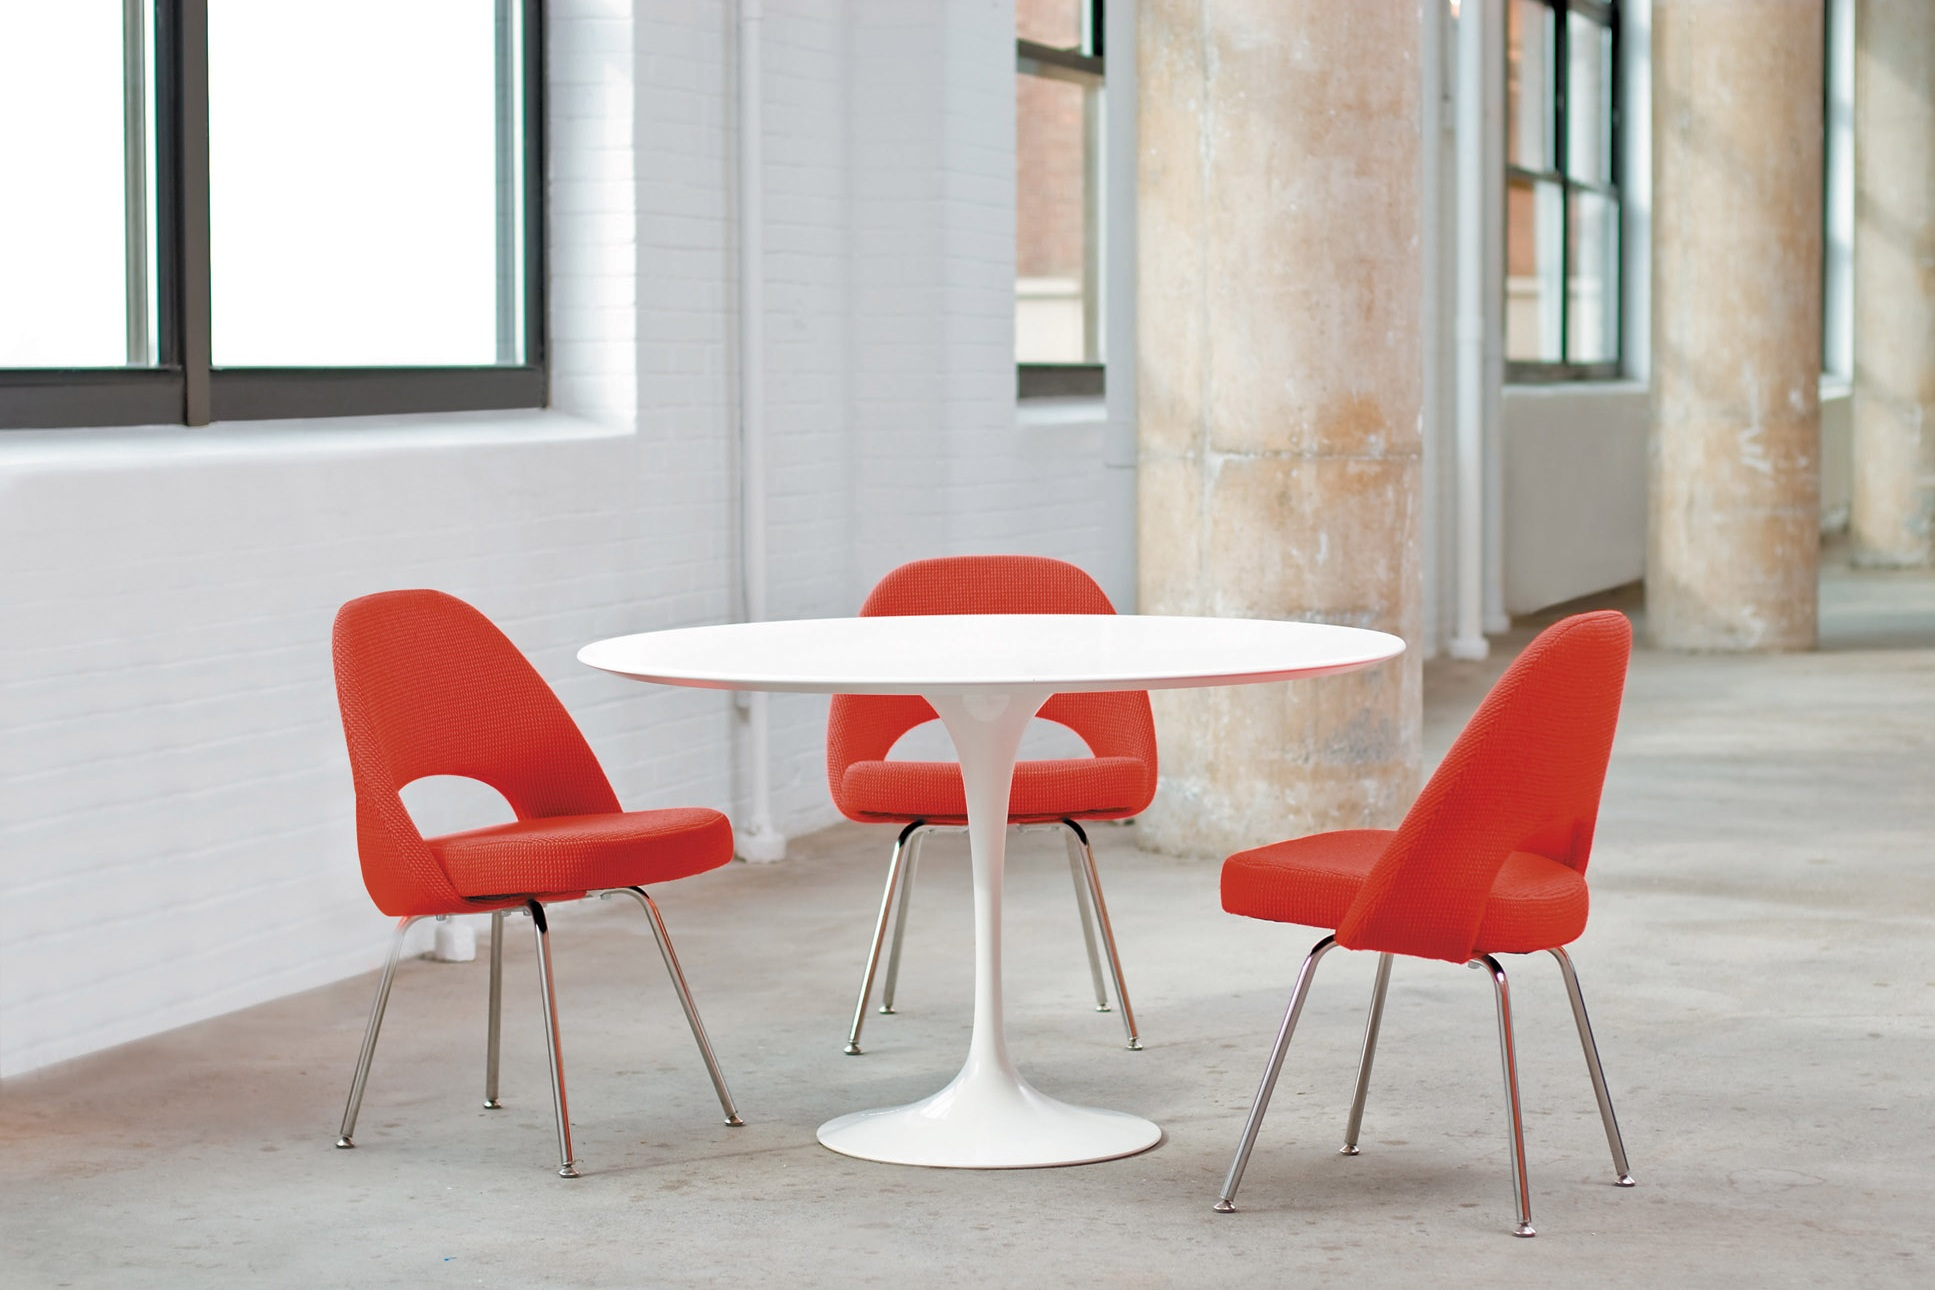 $$ - Saarinen Table